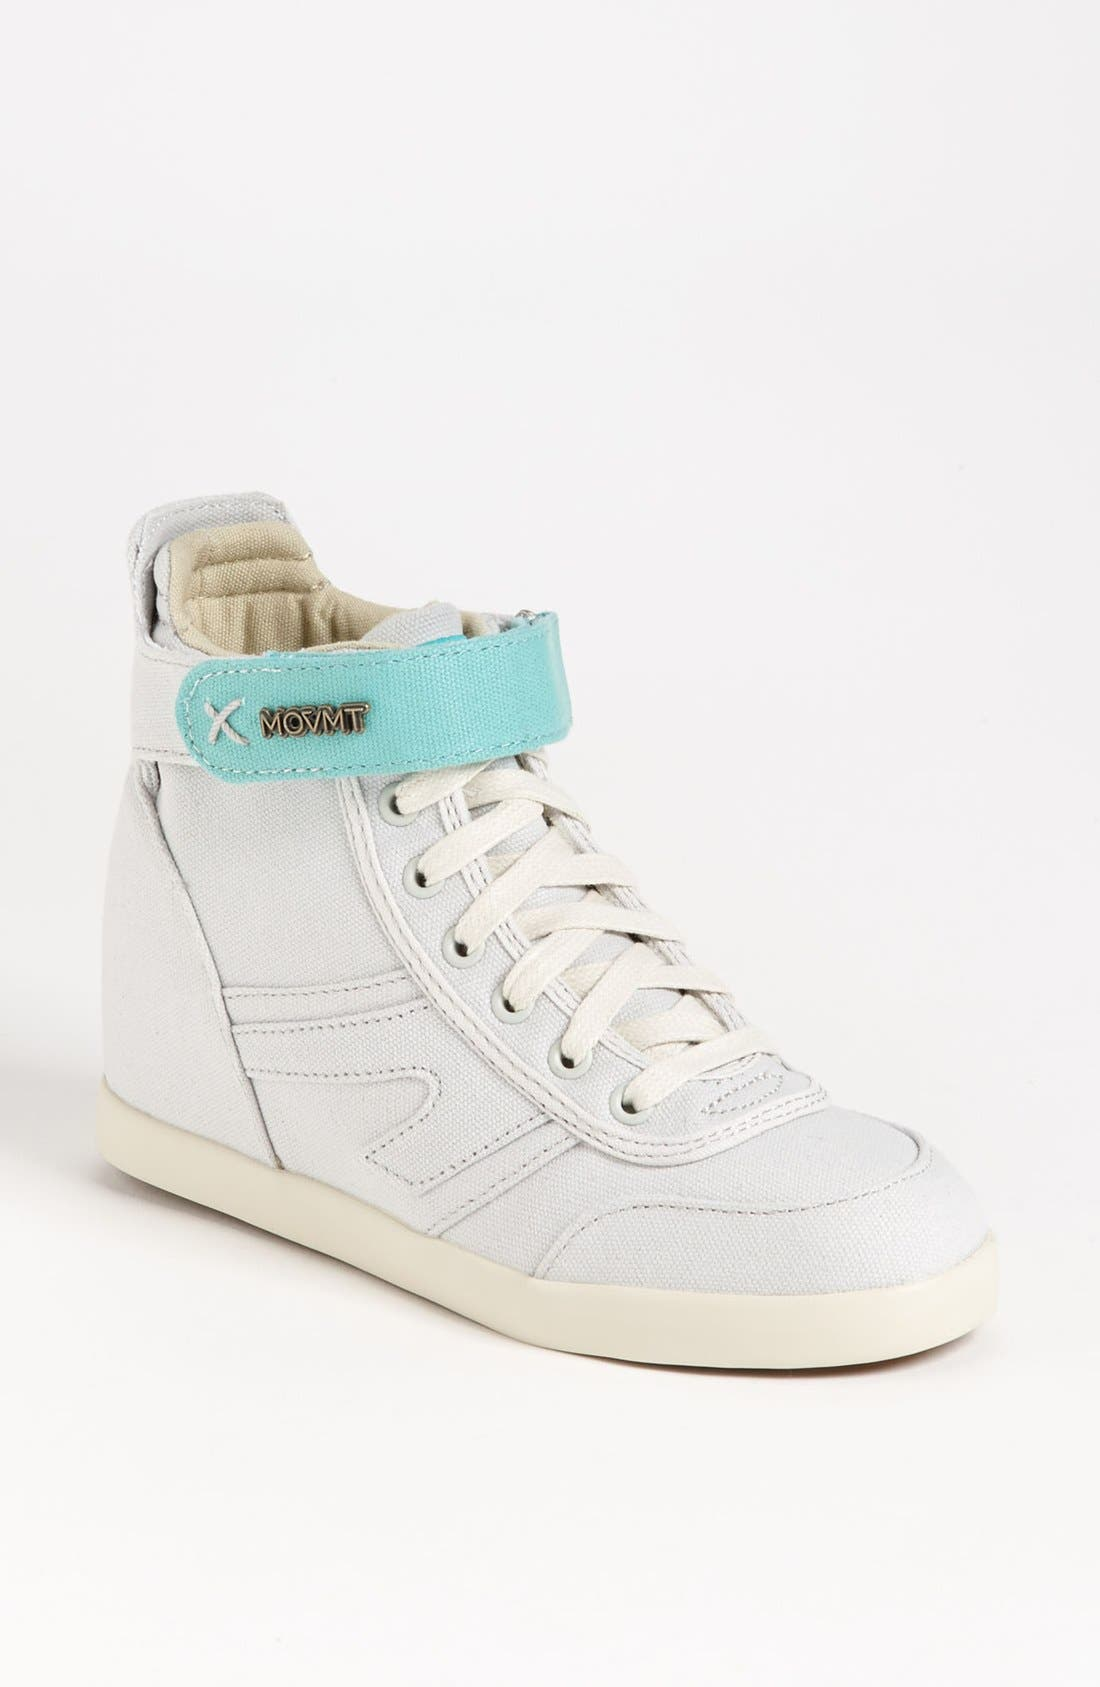 Main Image - The People's Movement 'Jade' Wedge Sneaker